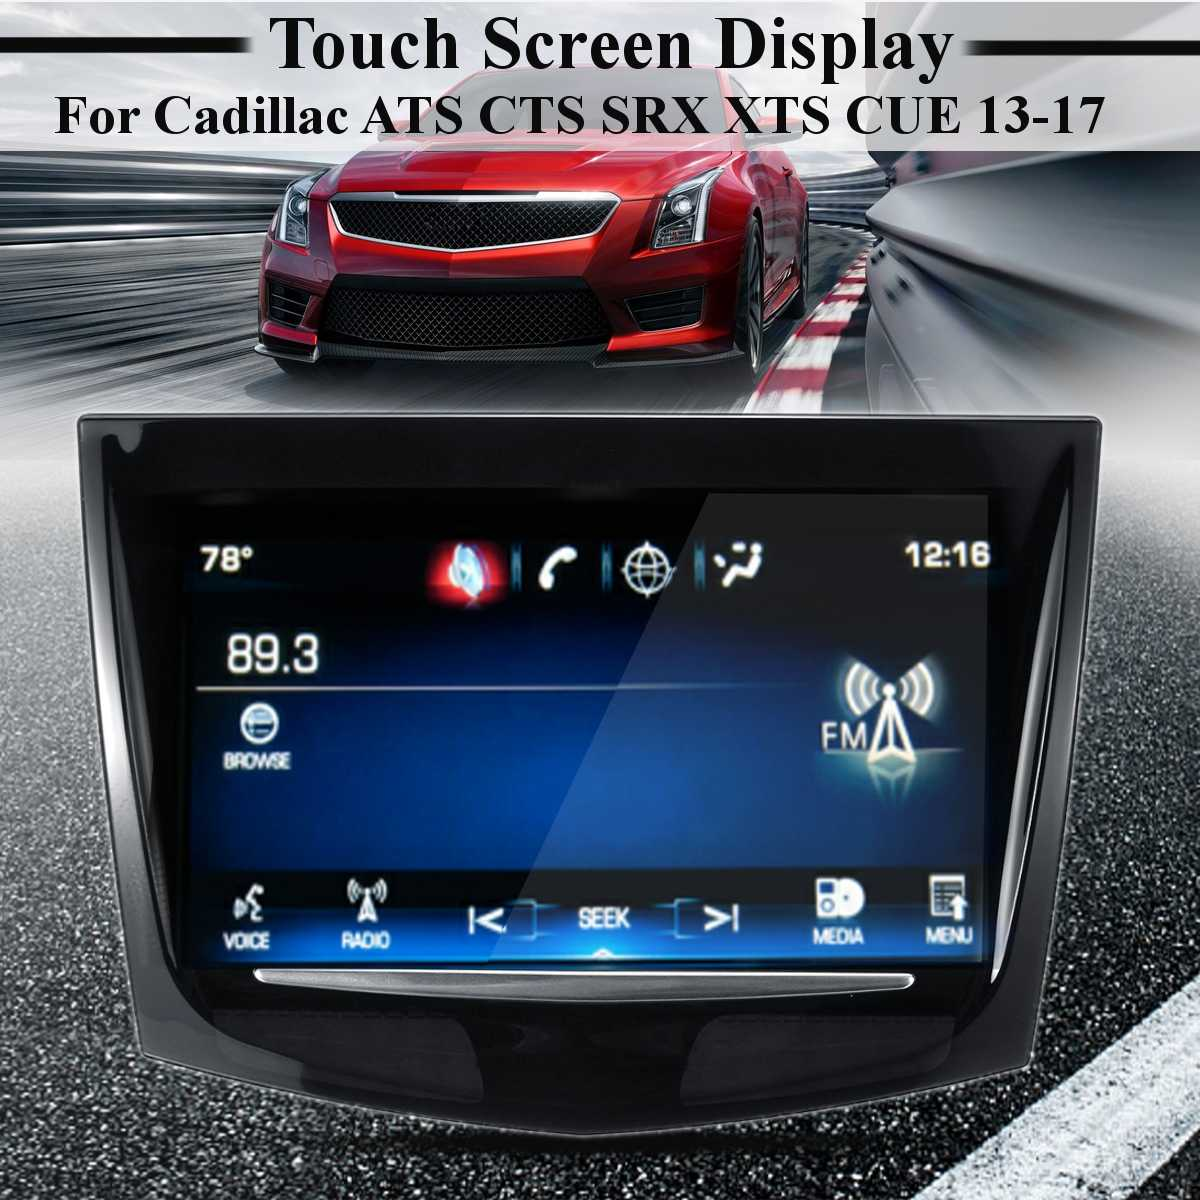 For Touch Screen Display For Cadillac Escalade ATS CTS SRX XTS CUE 2013-2017 Sense  For Touch Display Digitizer